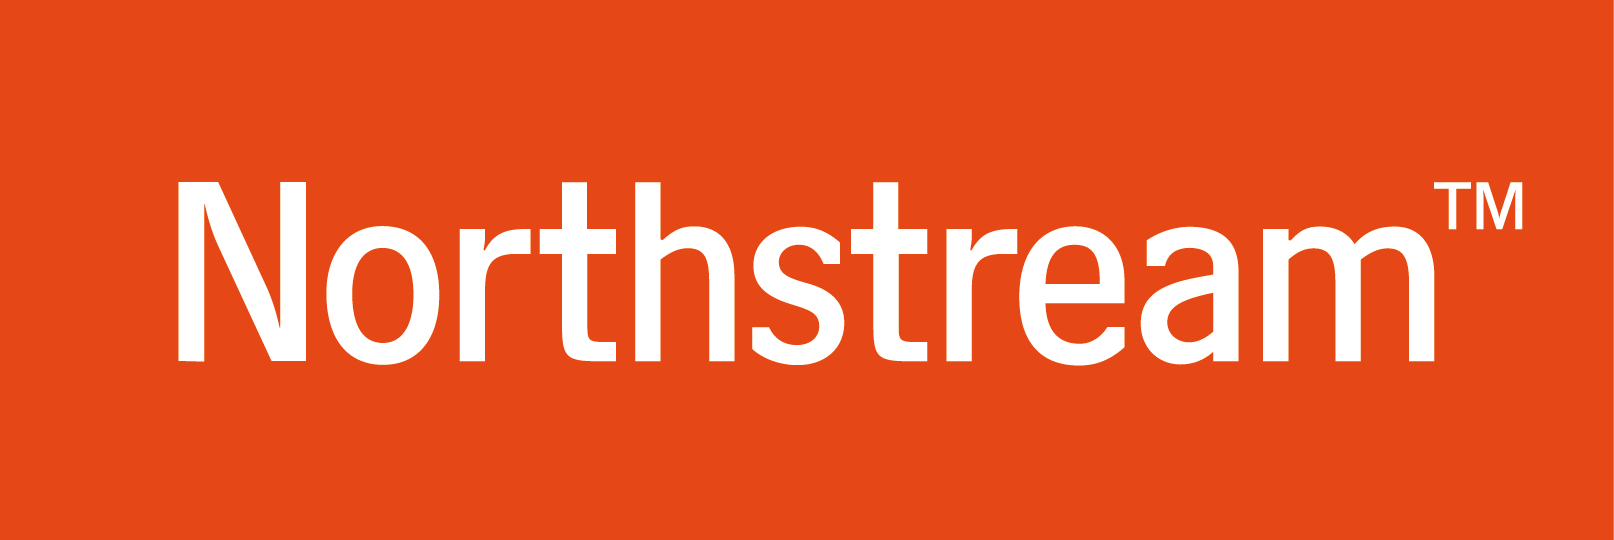 Northstream_Alt_1.png